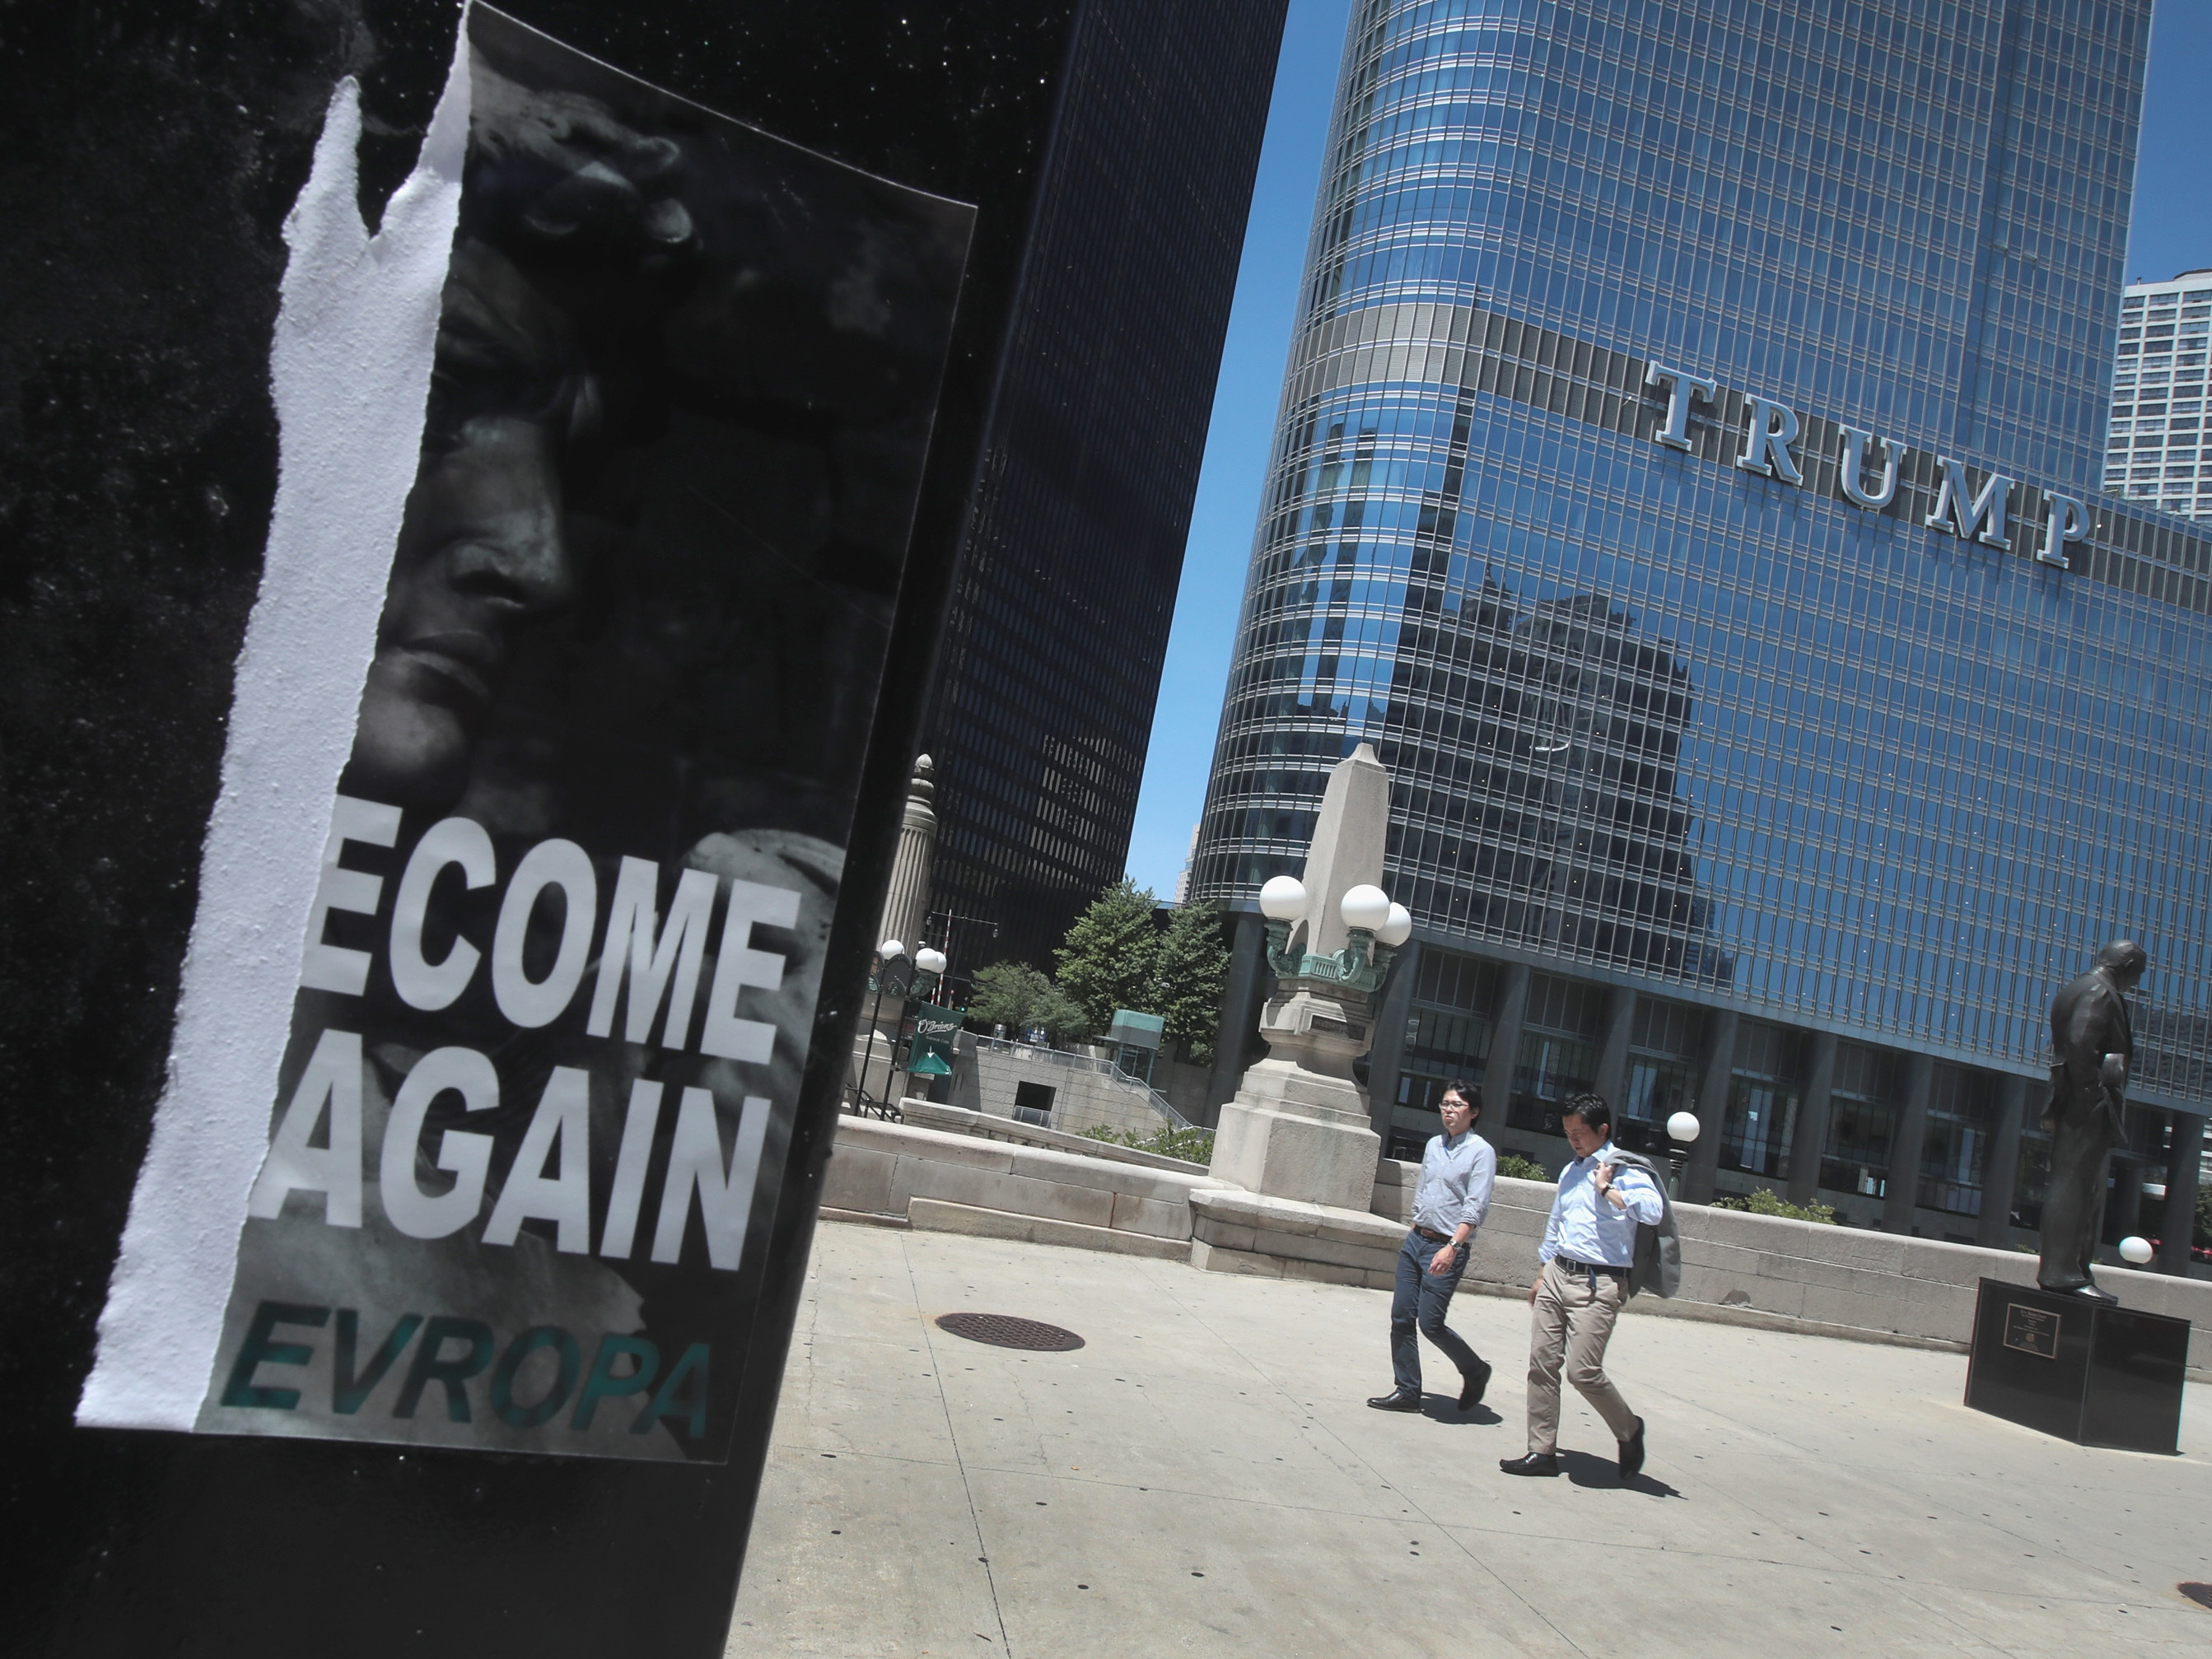 A defaced recruiting flyer for Identity Evropa hangs near Trump Tower in Chicago, in July 2016. The flyer which read